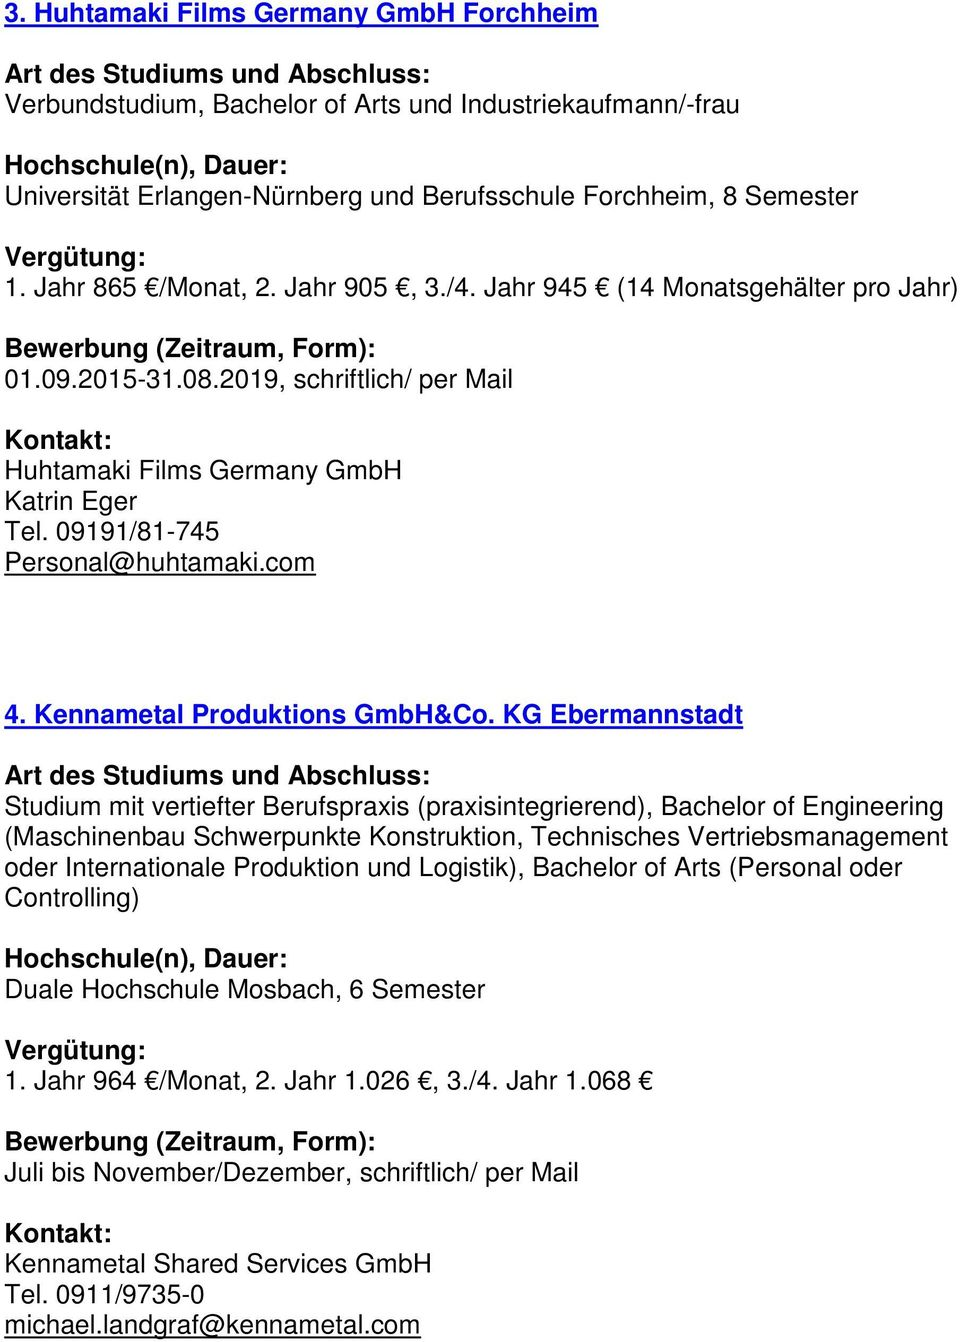 Kennametal Produktions GmbH&Co.